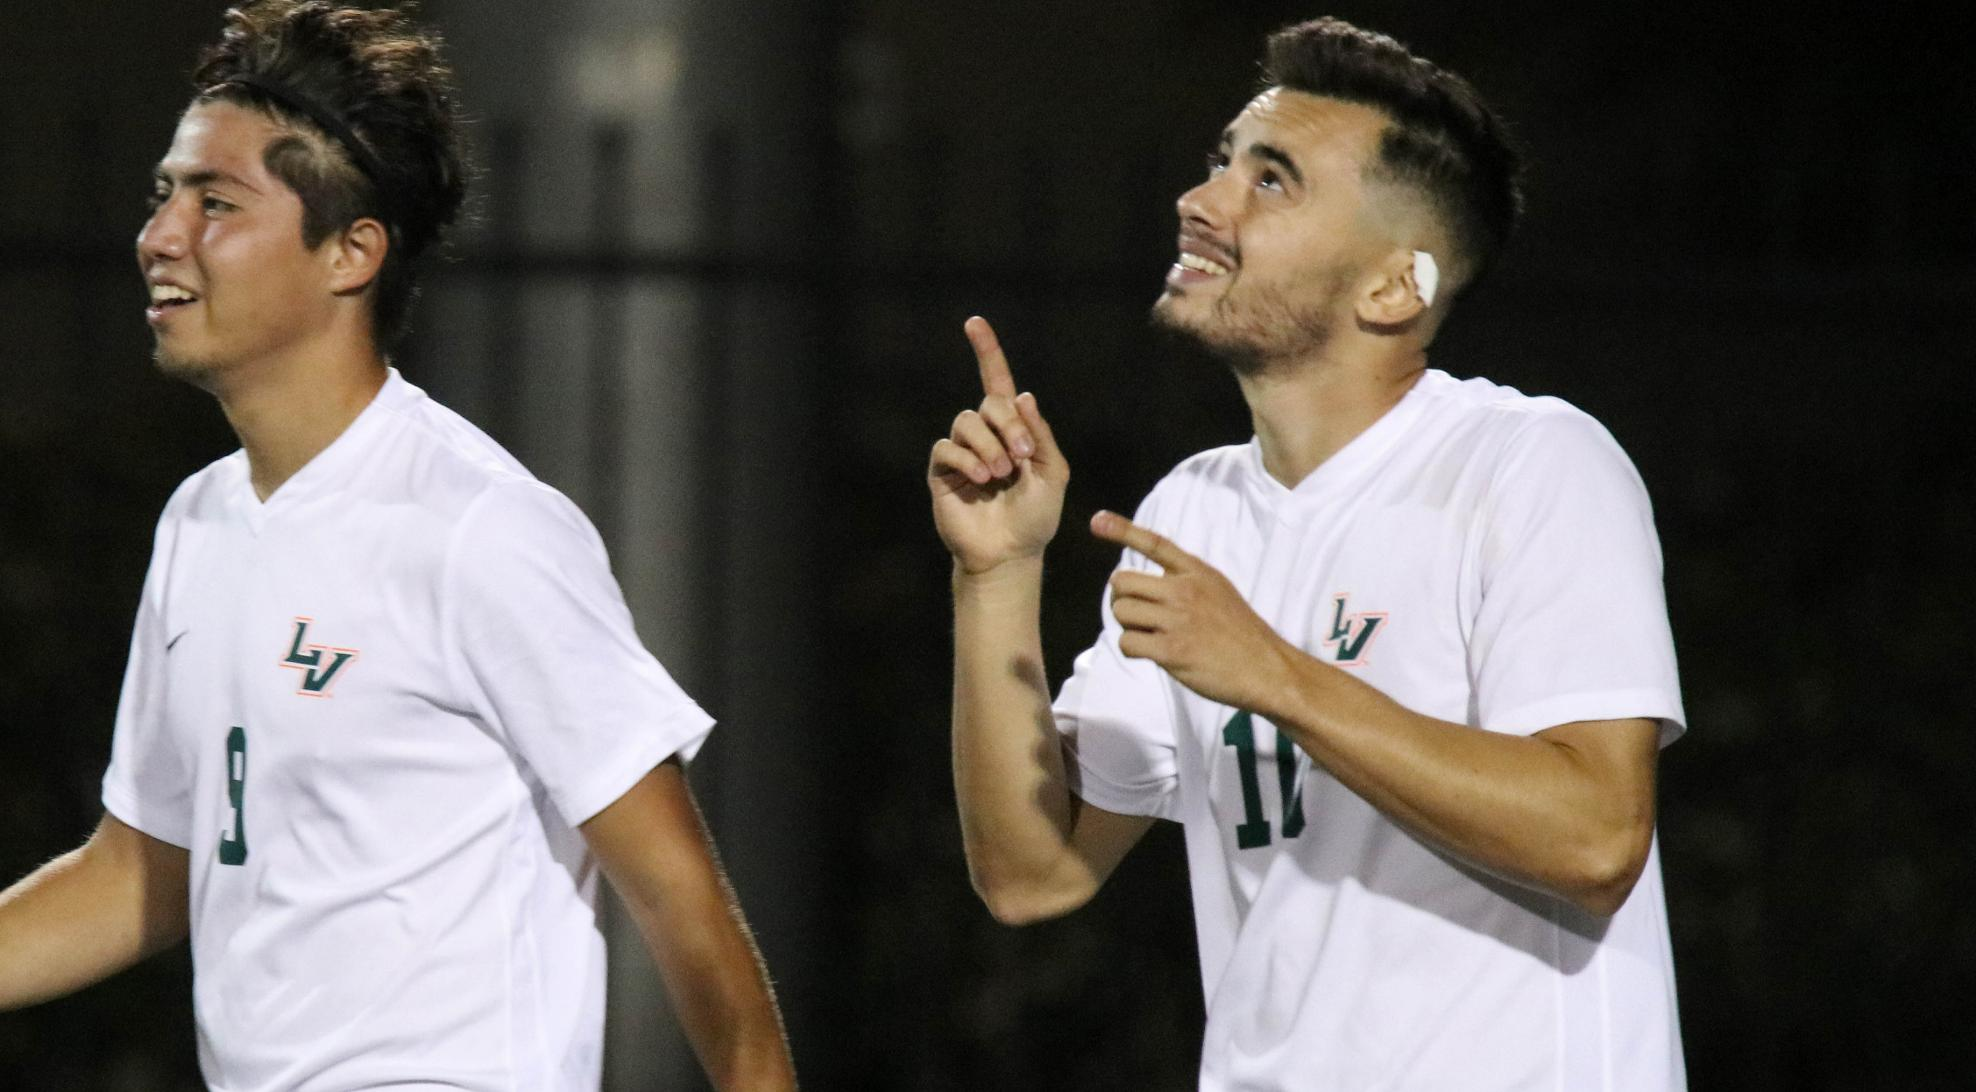 Men's Soccer cruises past Caltech, 5-1